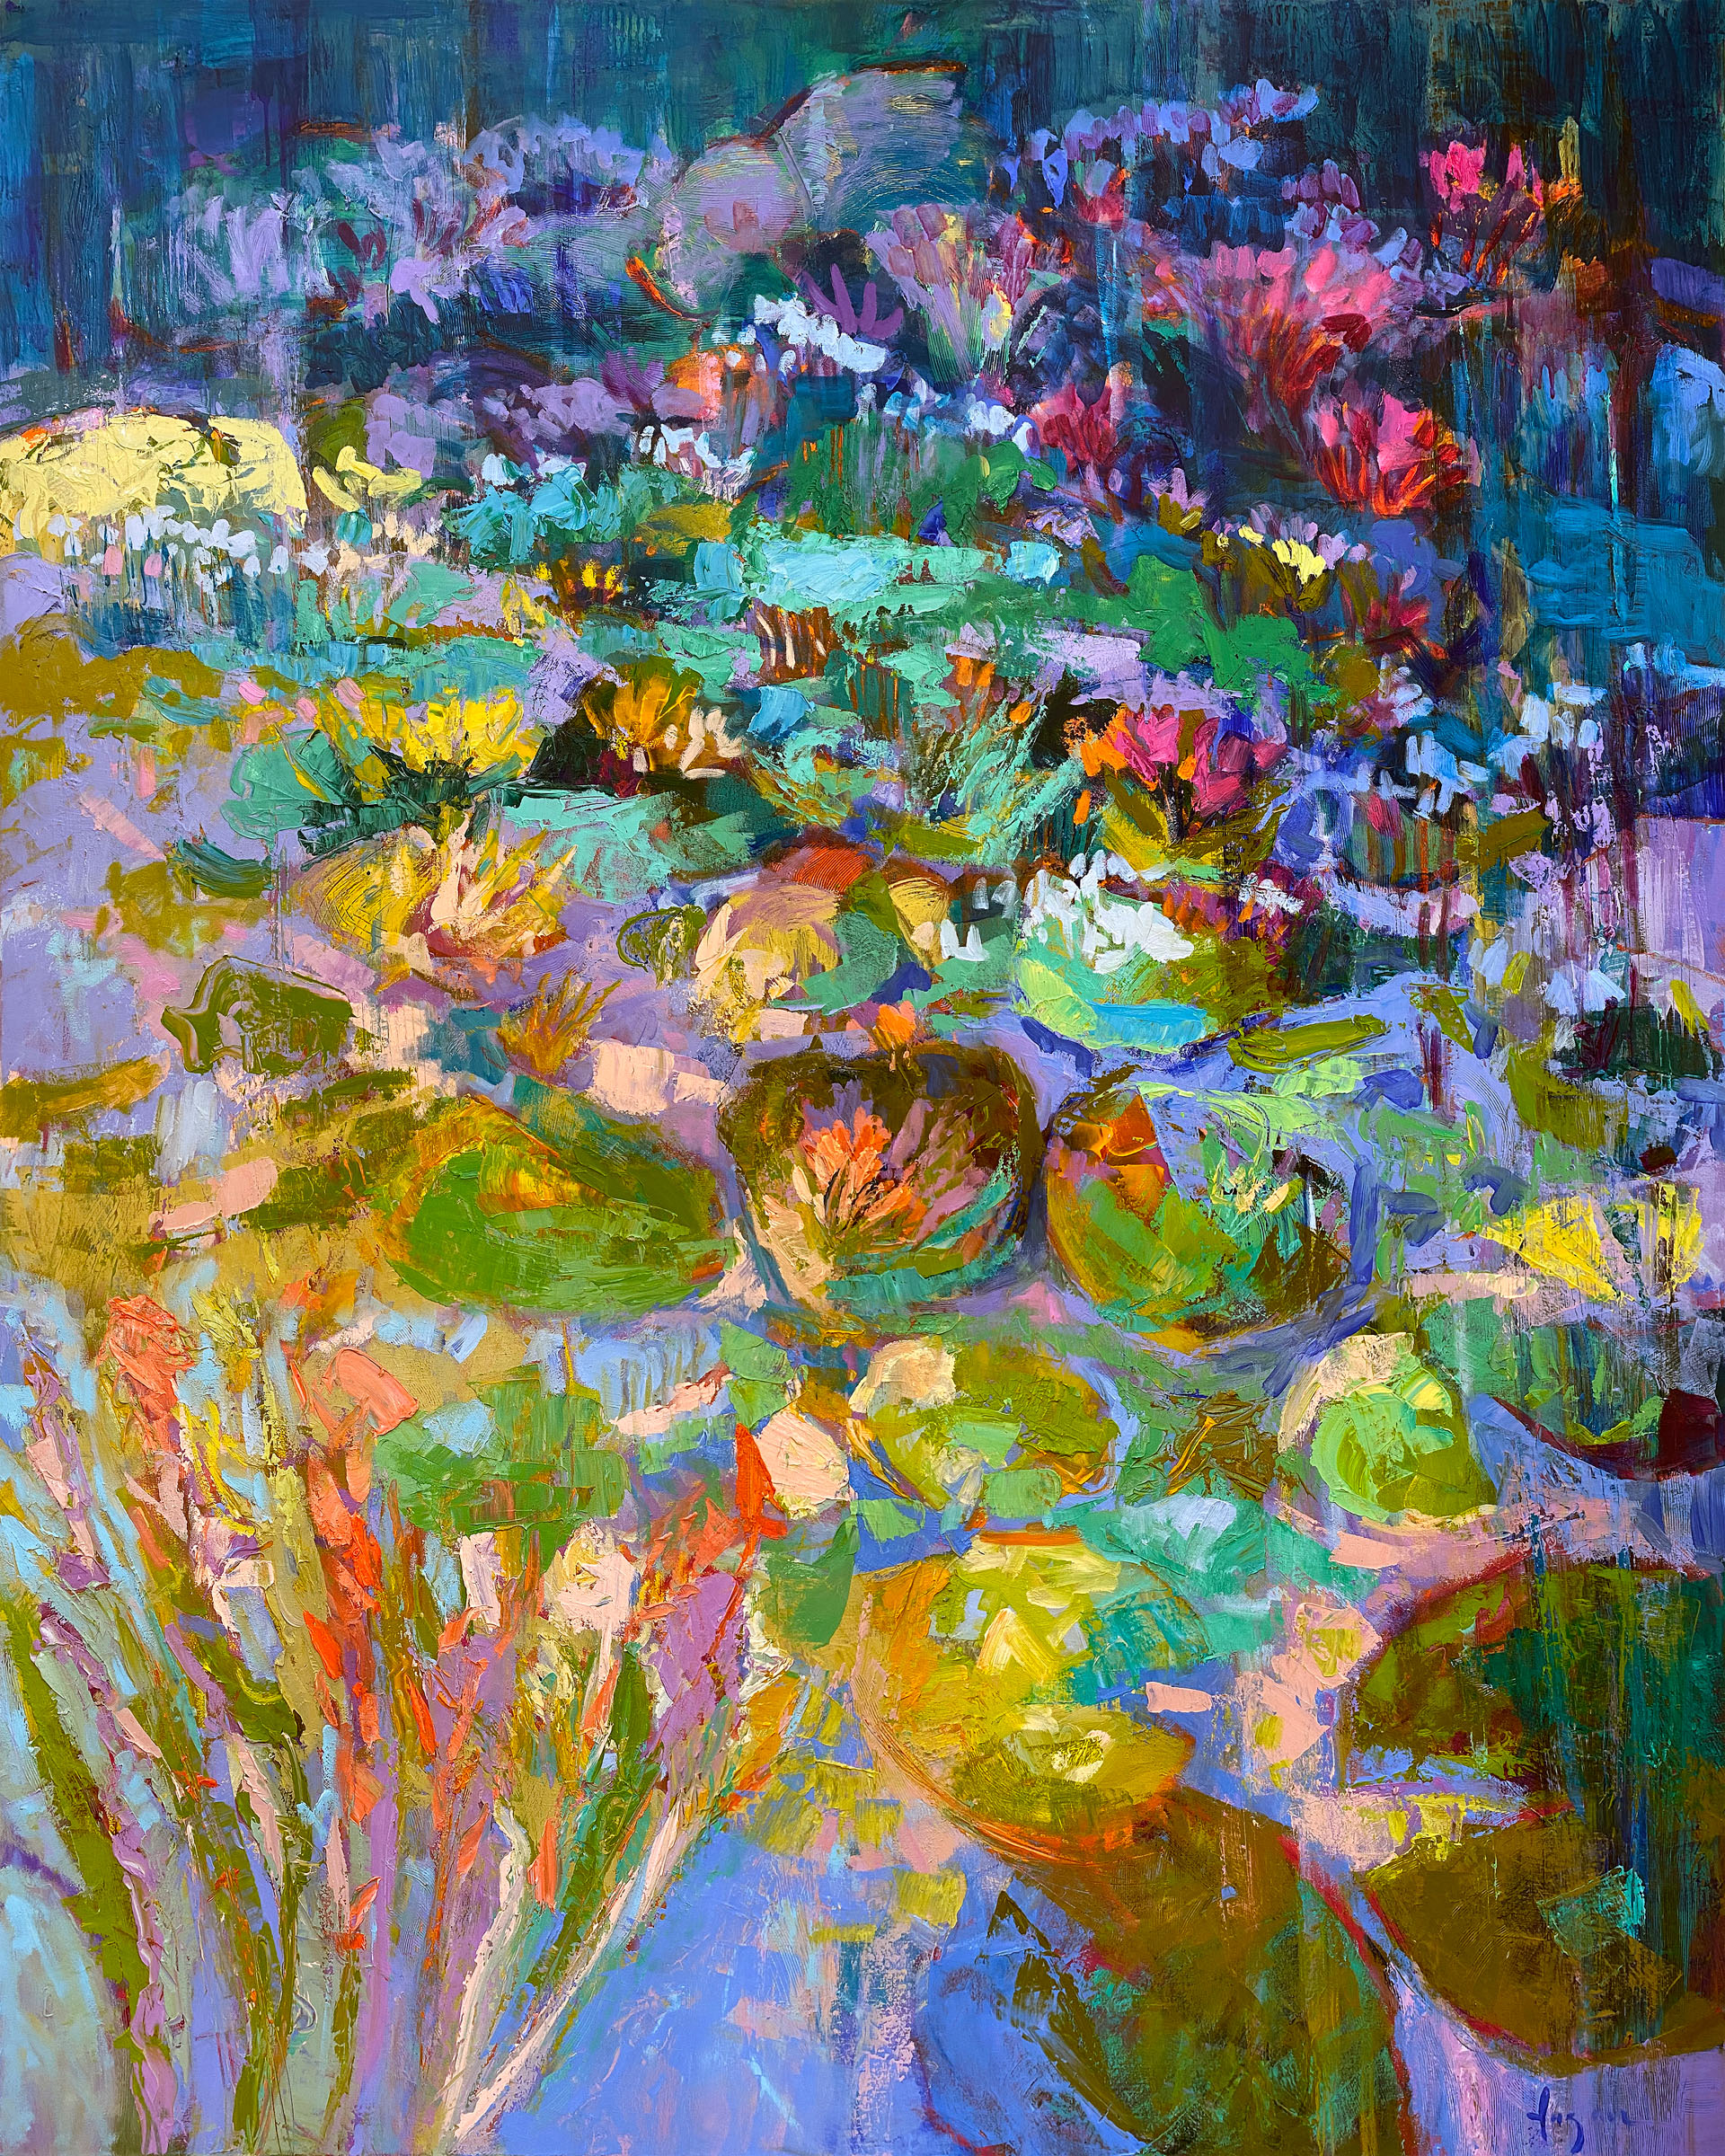 Oversize Abstract Floral Oil Painting for a Marble Fireplace. Waterlilies in a California Desert Residence